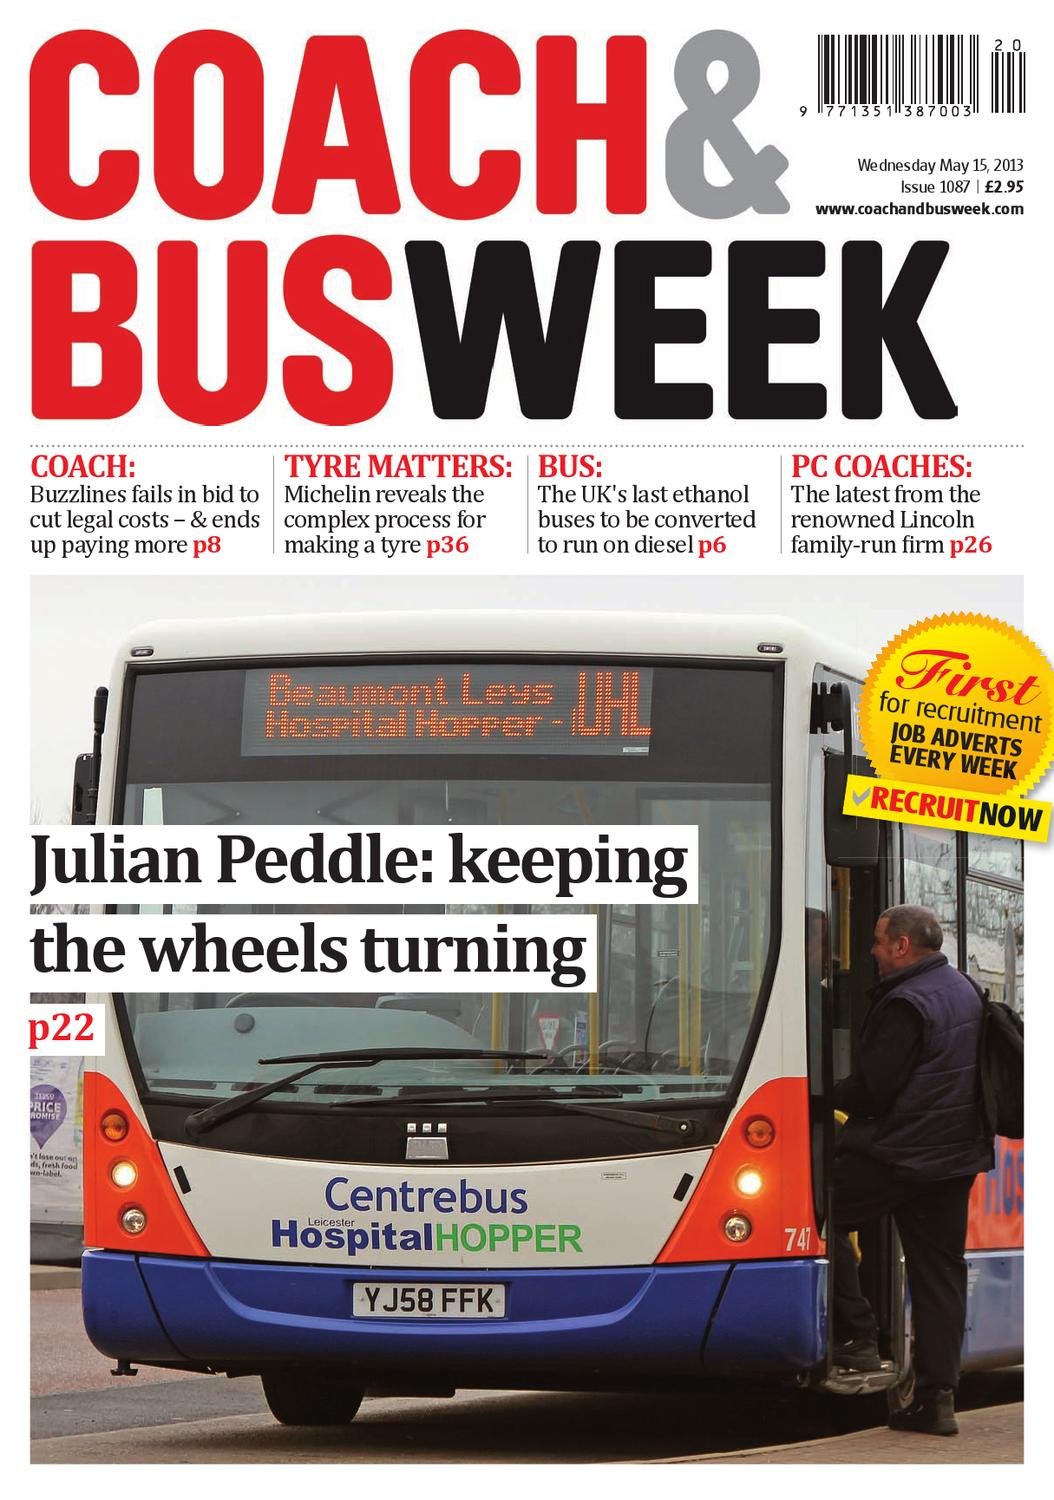 hight resolution of coach bus week issue 1087 by coach and bus week group travel world issuu